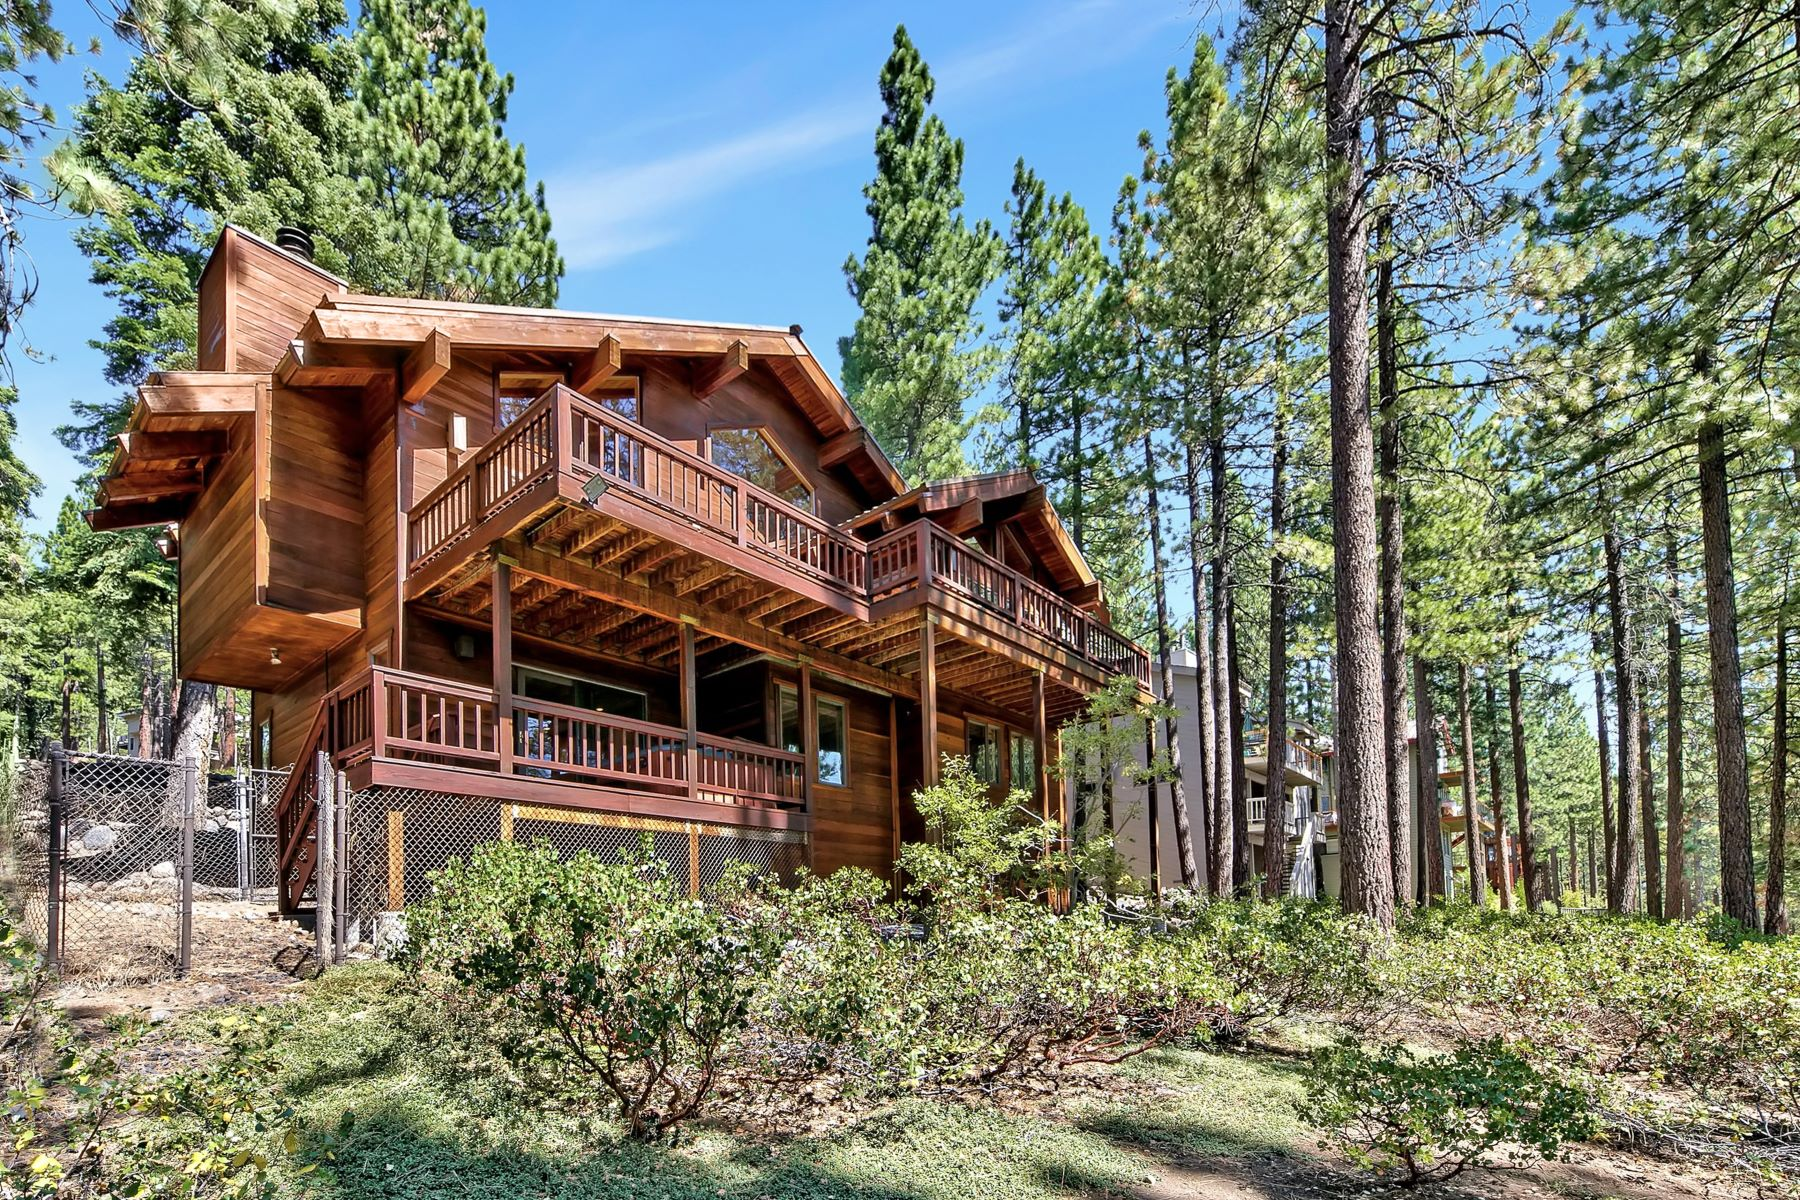 Single Family Homes for Active at Tahoe Lifestyle Awaits You 800 Tyner Way Incline Village, Nevada 89451 United States